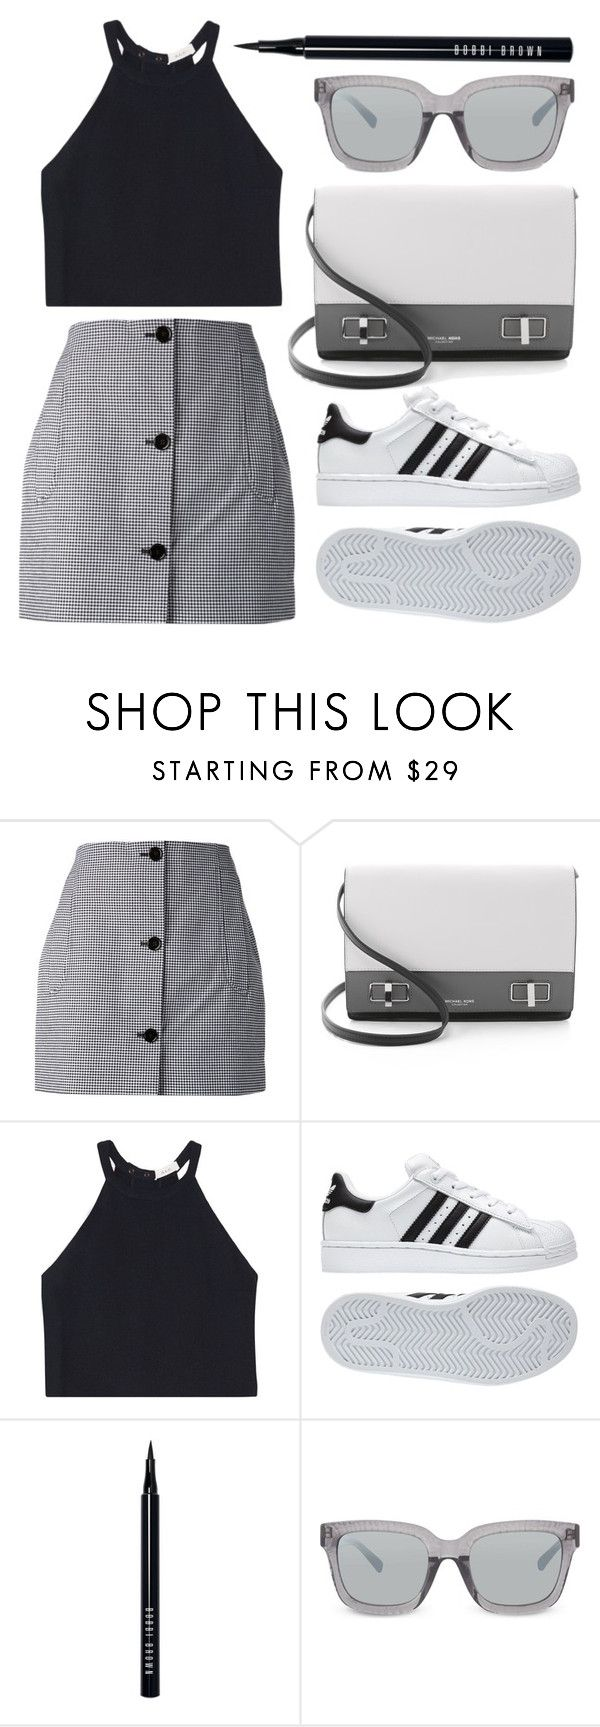 """""""I GOTTA GO."""" by shanelala ❤ liked on Polyvore featuring Carven, Michael Kors, A.L.C., adidas, Bobbi Brown Cosmetics and 3.1 Phillip Lim"""